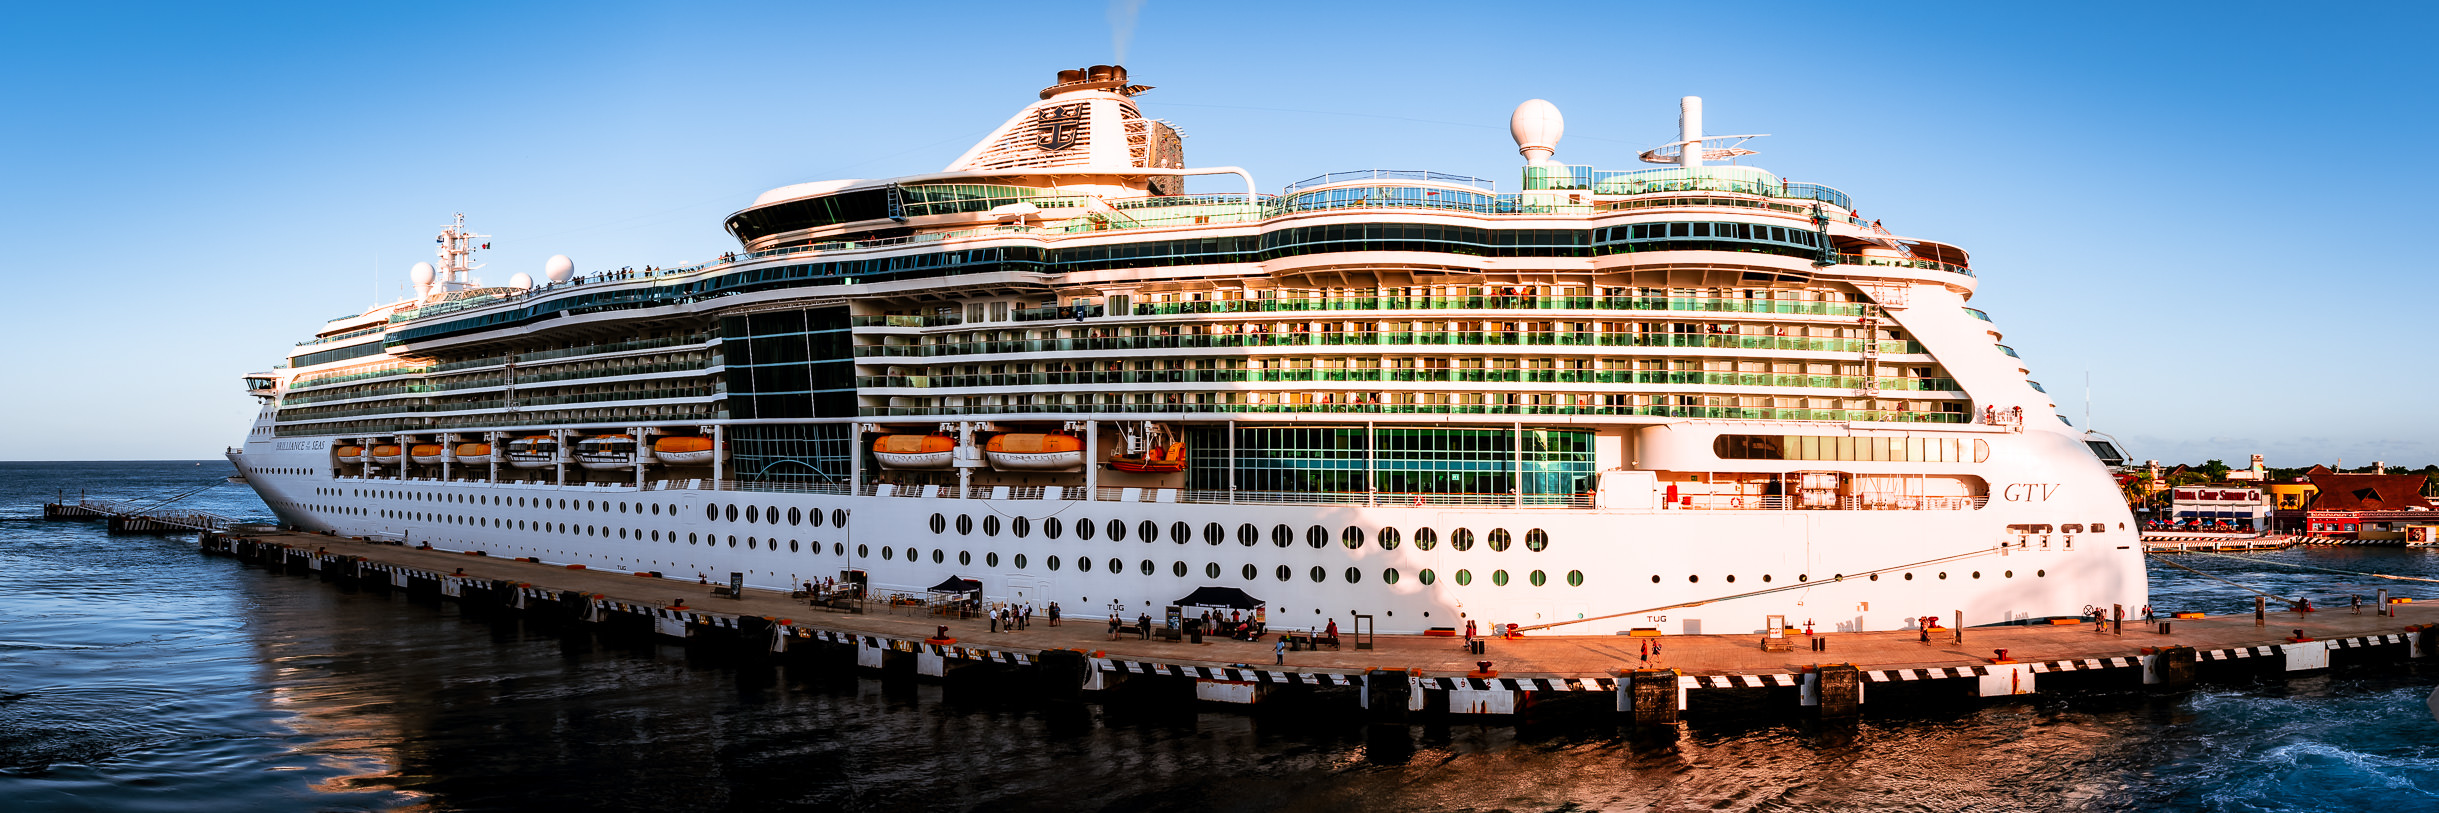 The Royal Caribbean cruise ship Brilliance of the Seas, docked in Cozumel, Mexico.